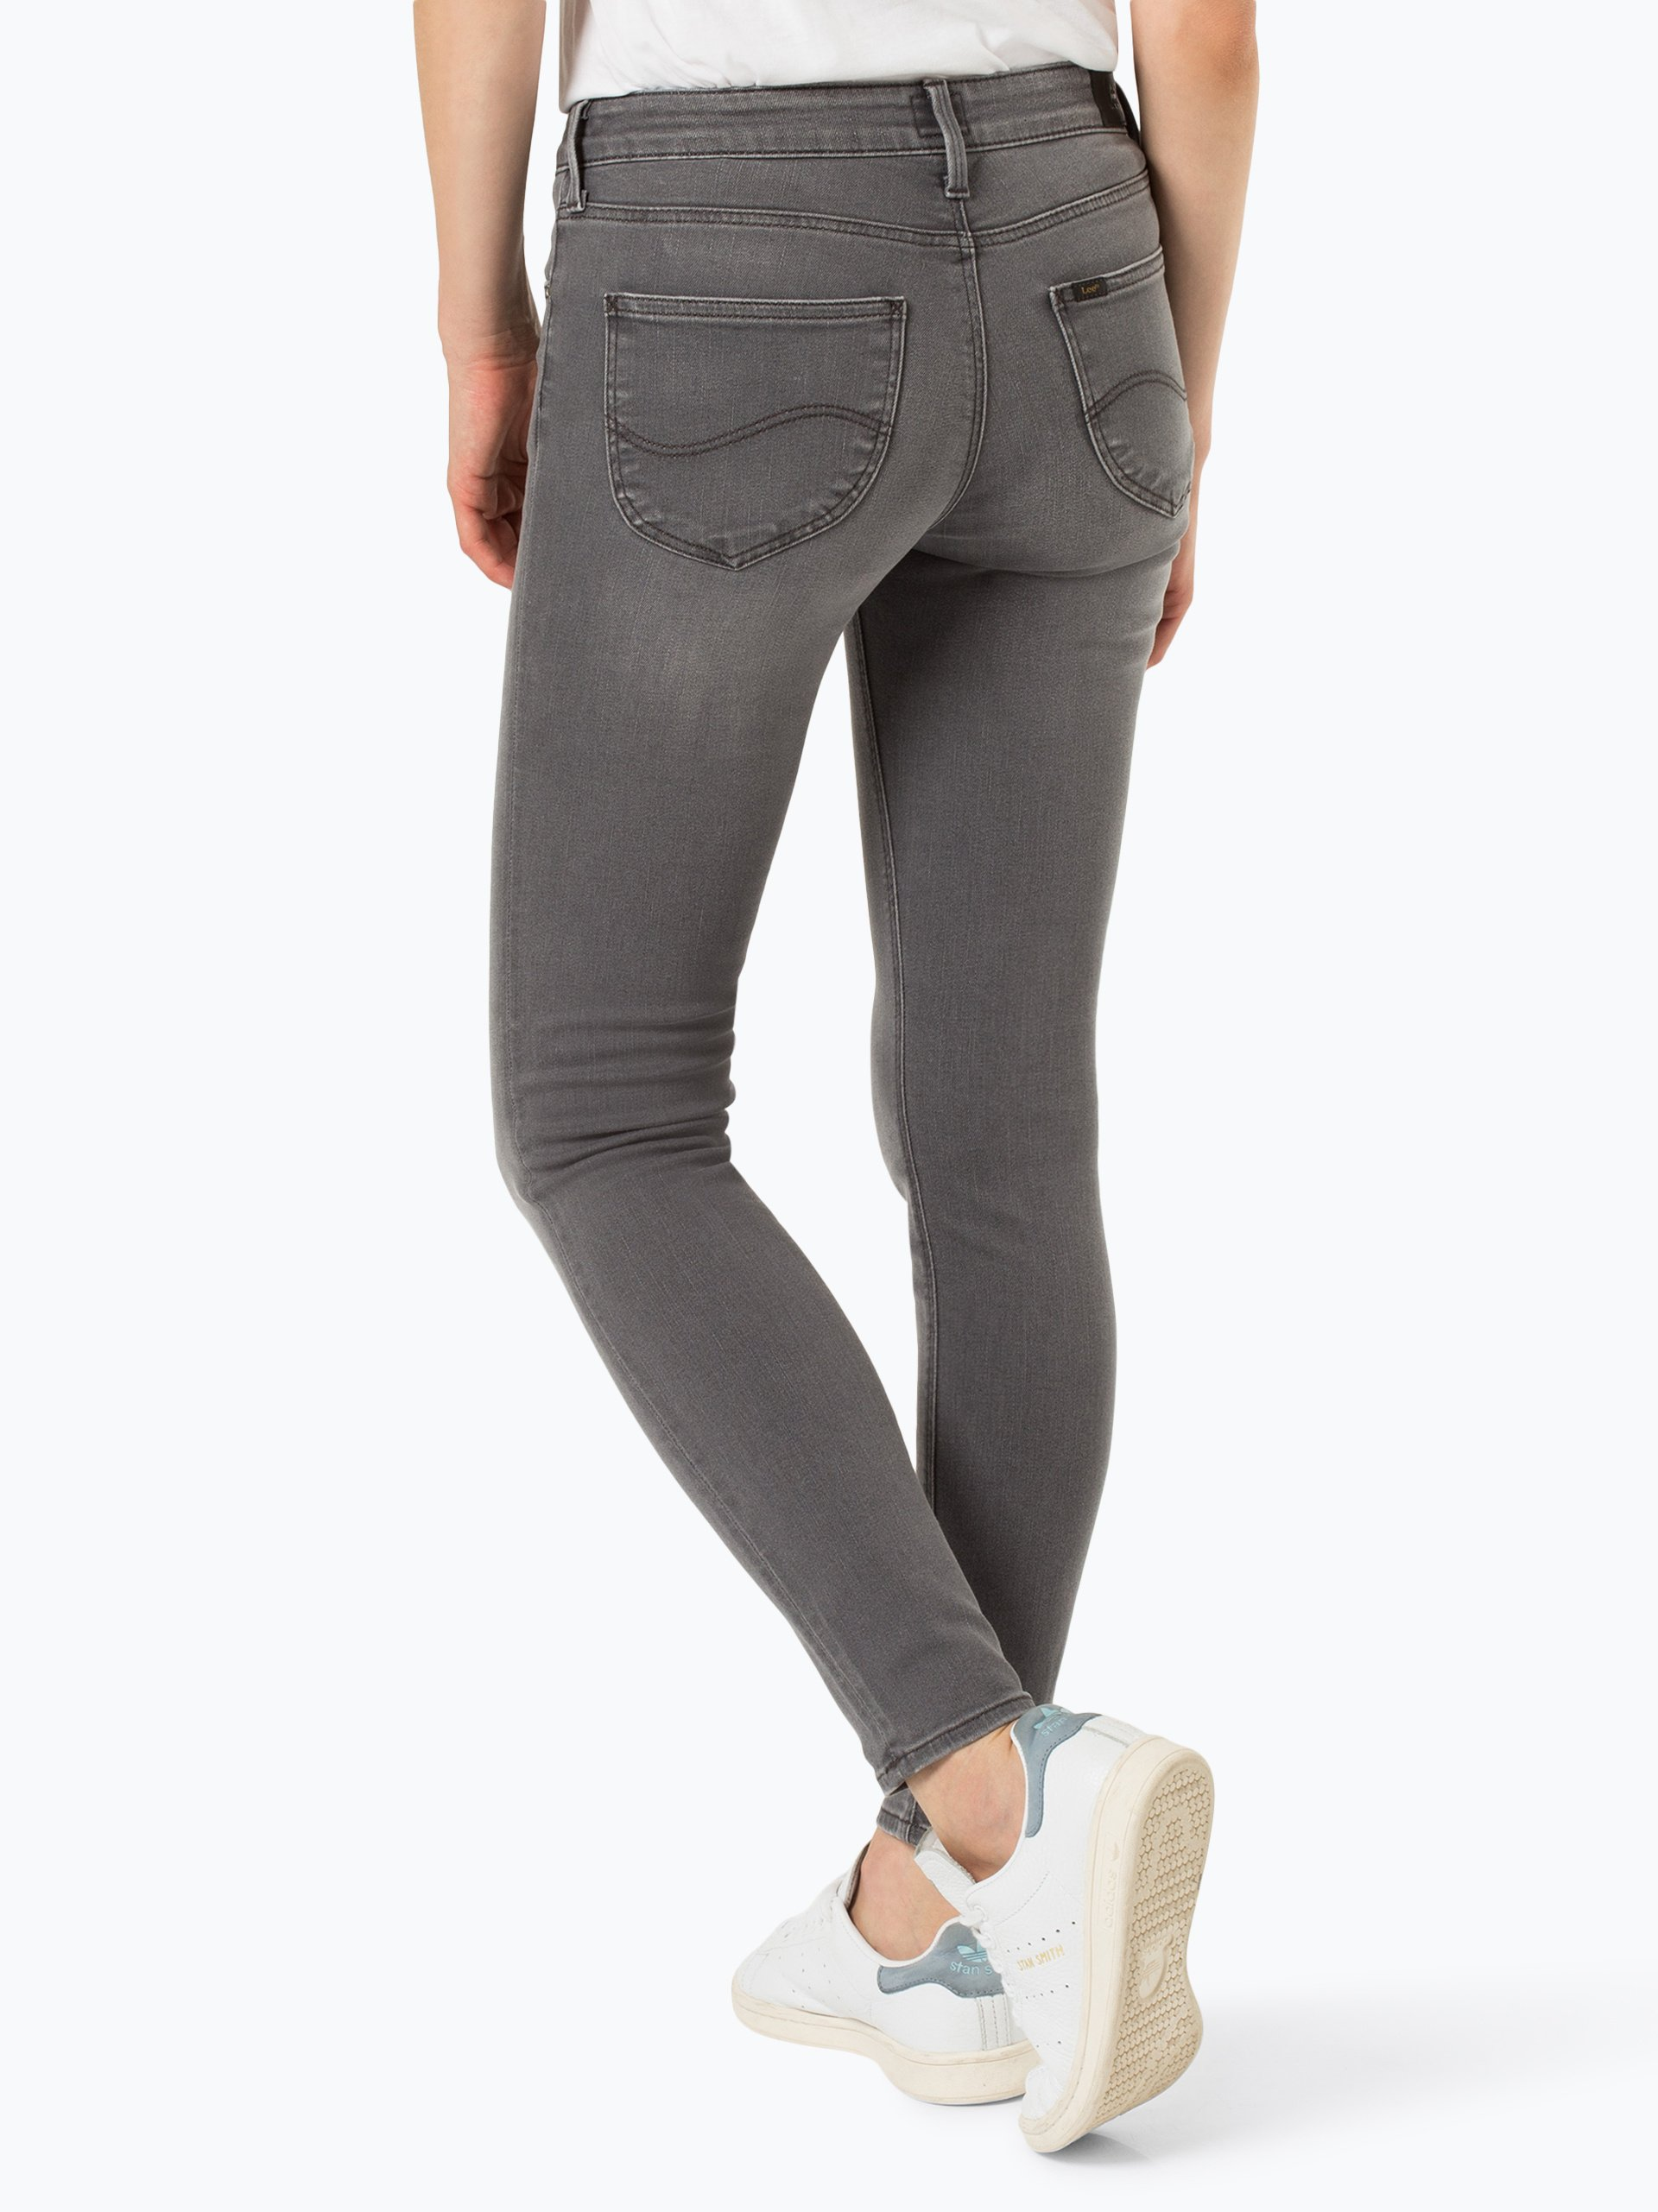 Lee Damen Jeans - Scarlett